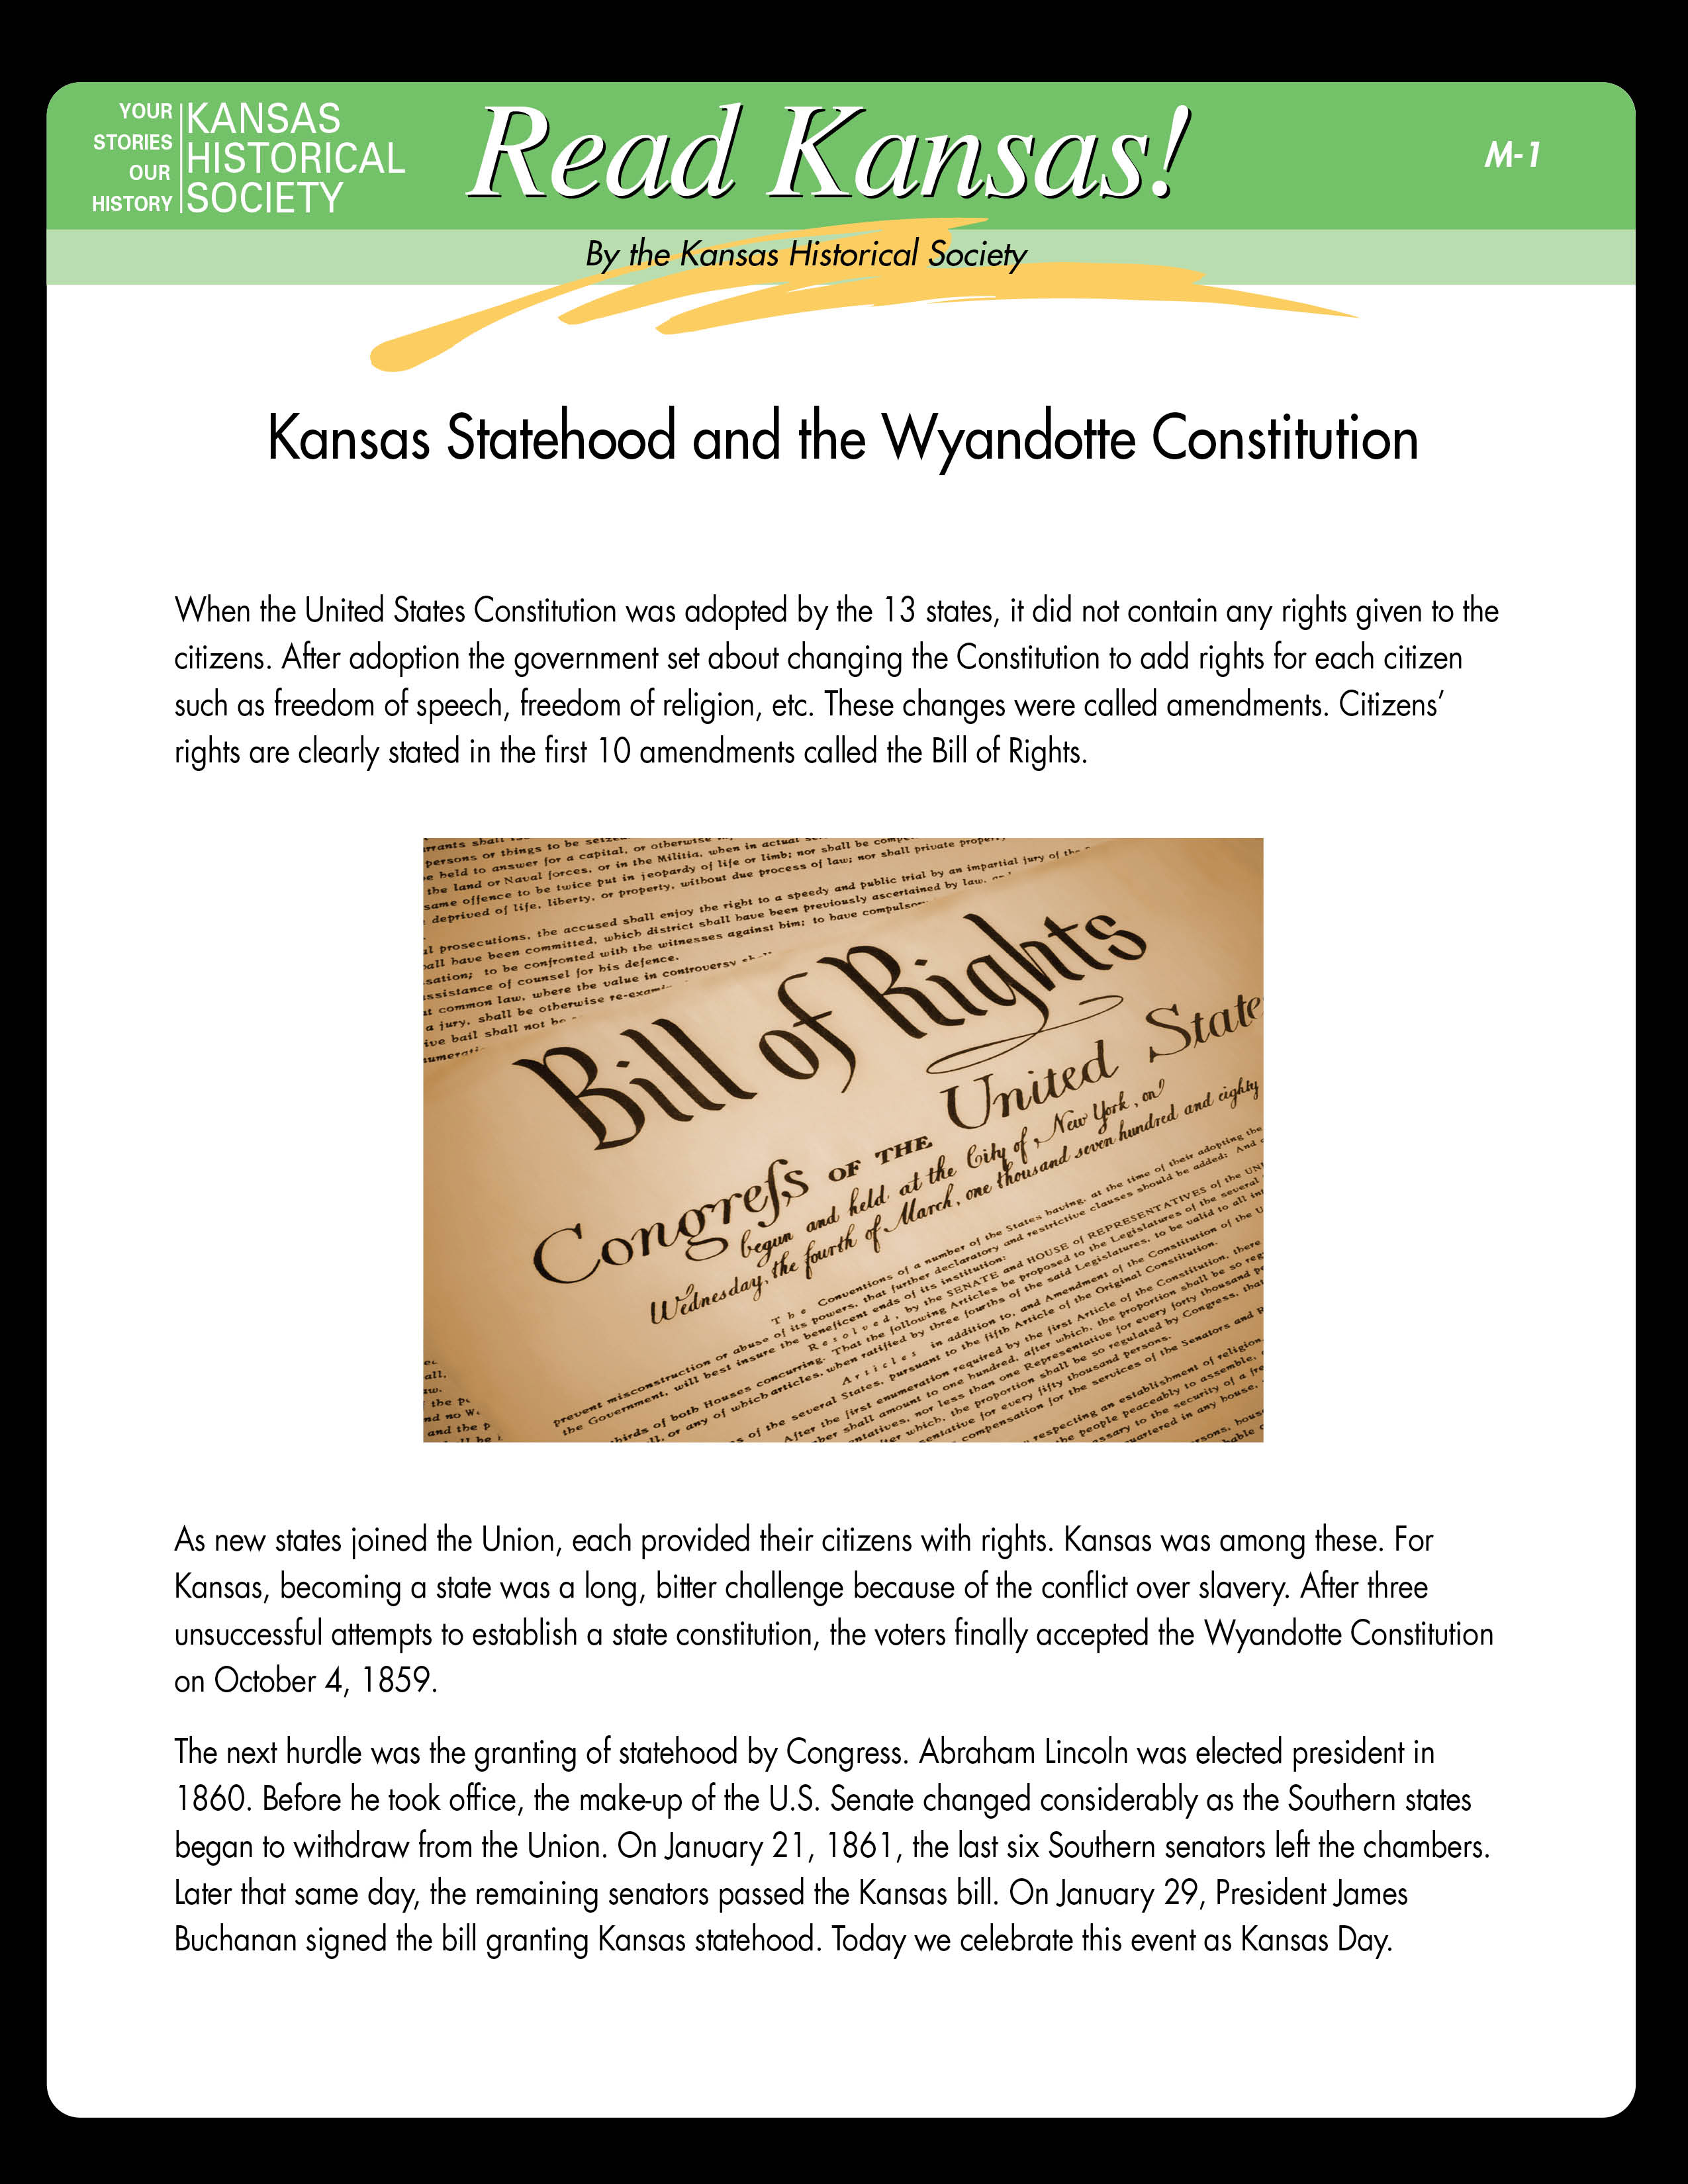 Kansas Statehood and the Wyandotte Constitution